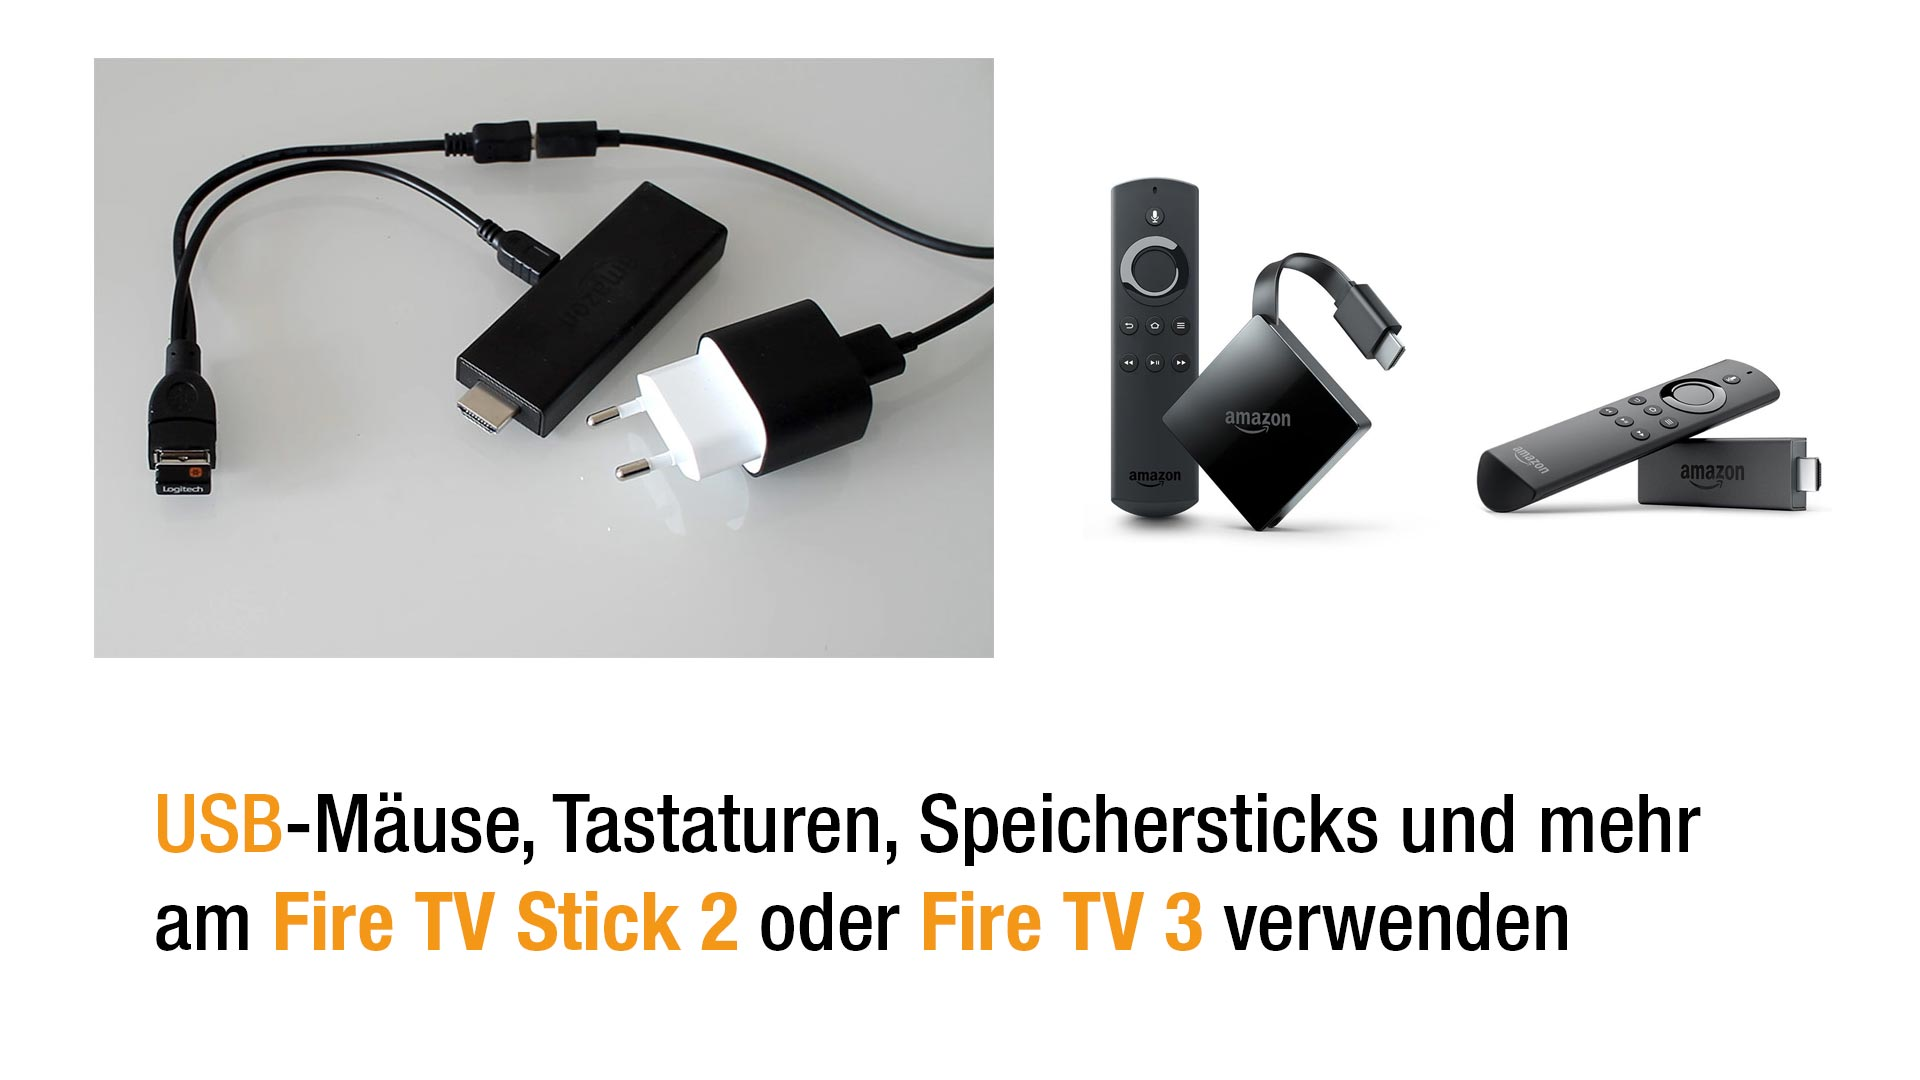 anleitung usb ger te an fire tv stick 2 3 oder 4k fire. Black Bedroom Furniture Sets. Home Design Ideas